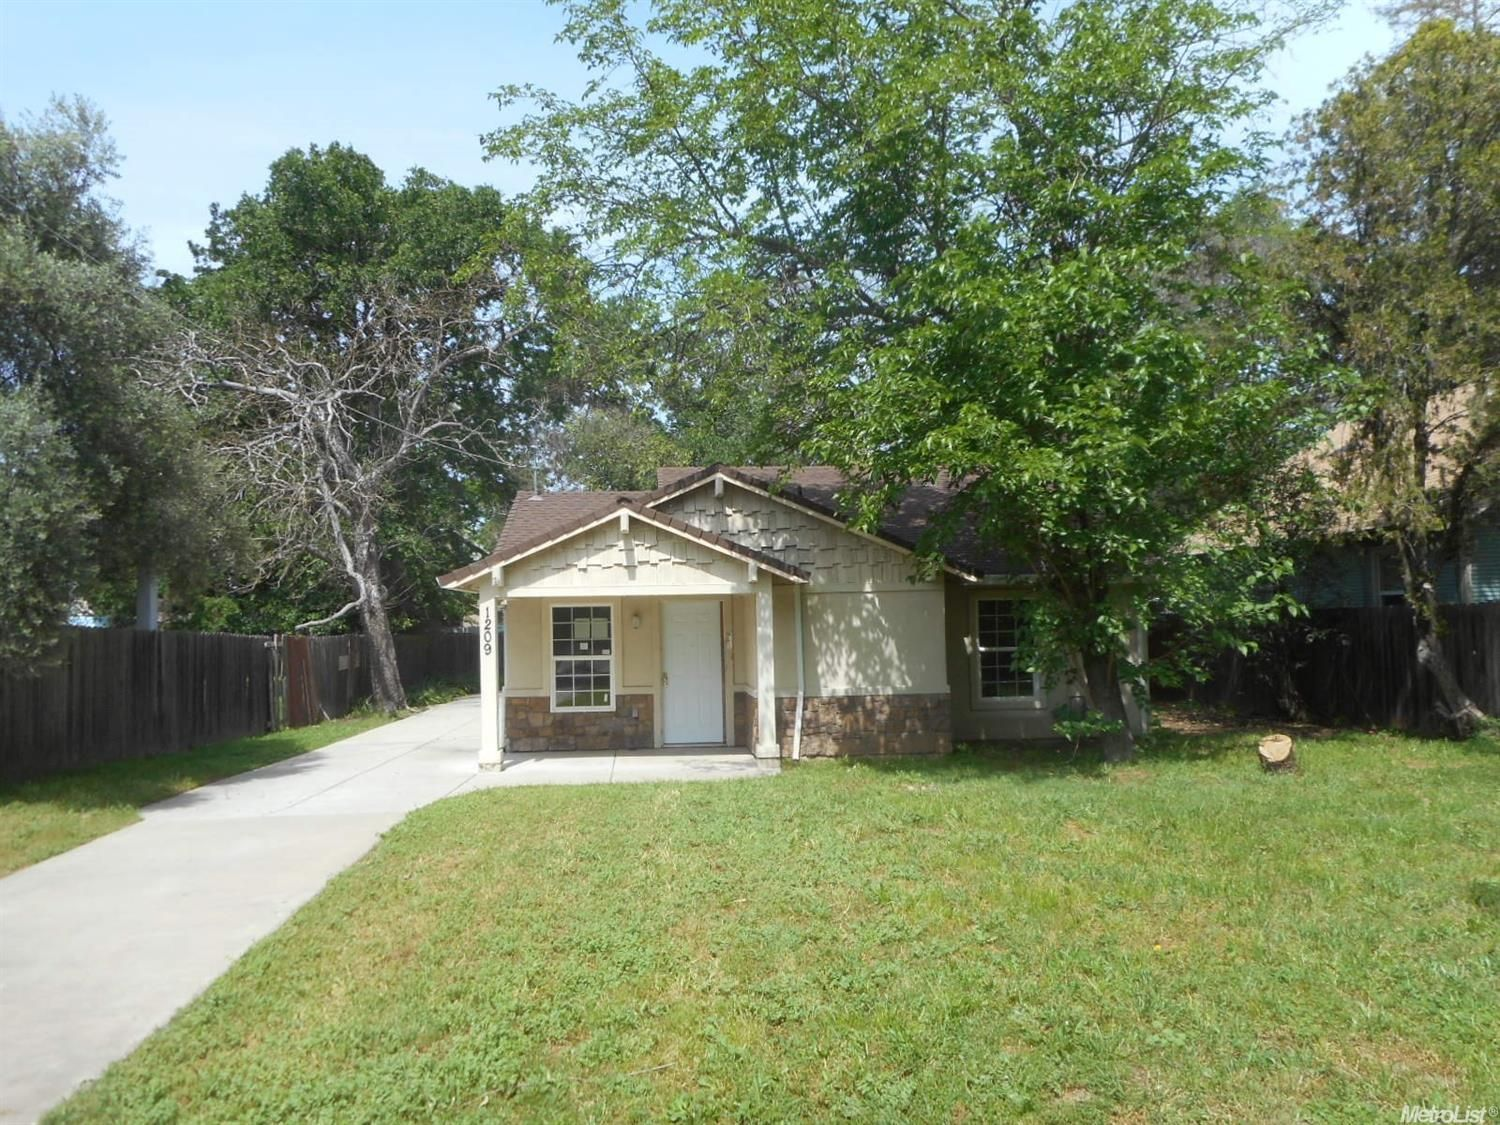 1209 Los Robles Blvd, Sacramento, CA 95838. 3 bed, 1 bath